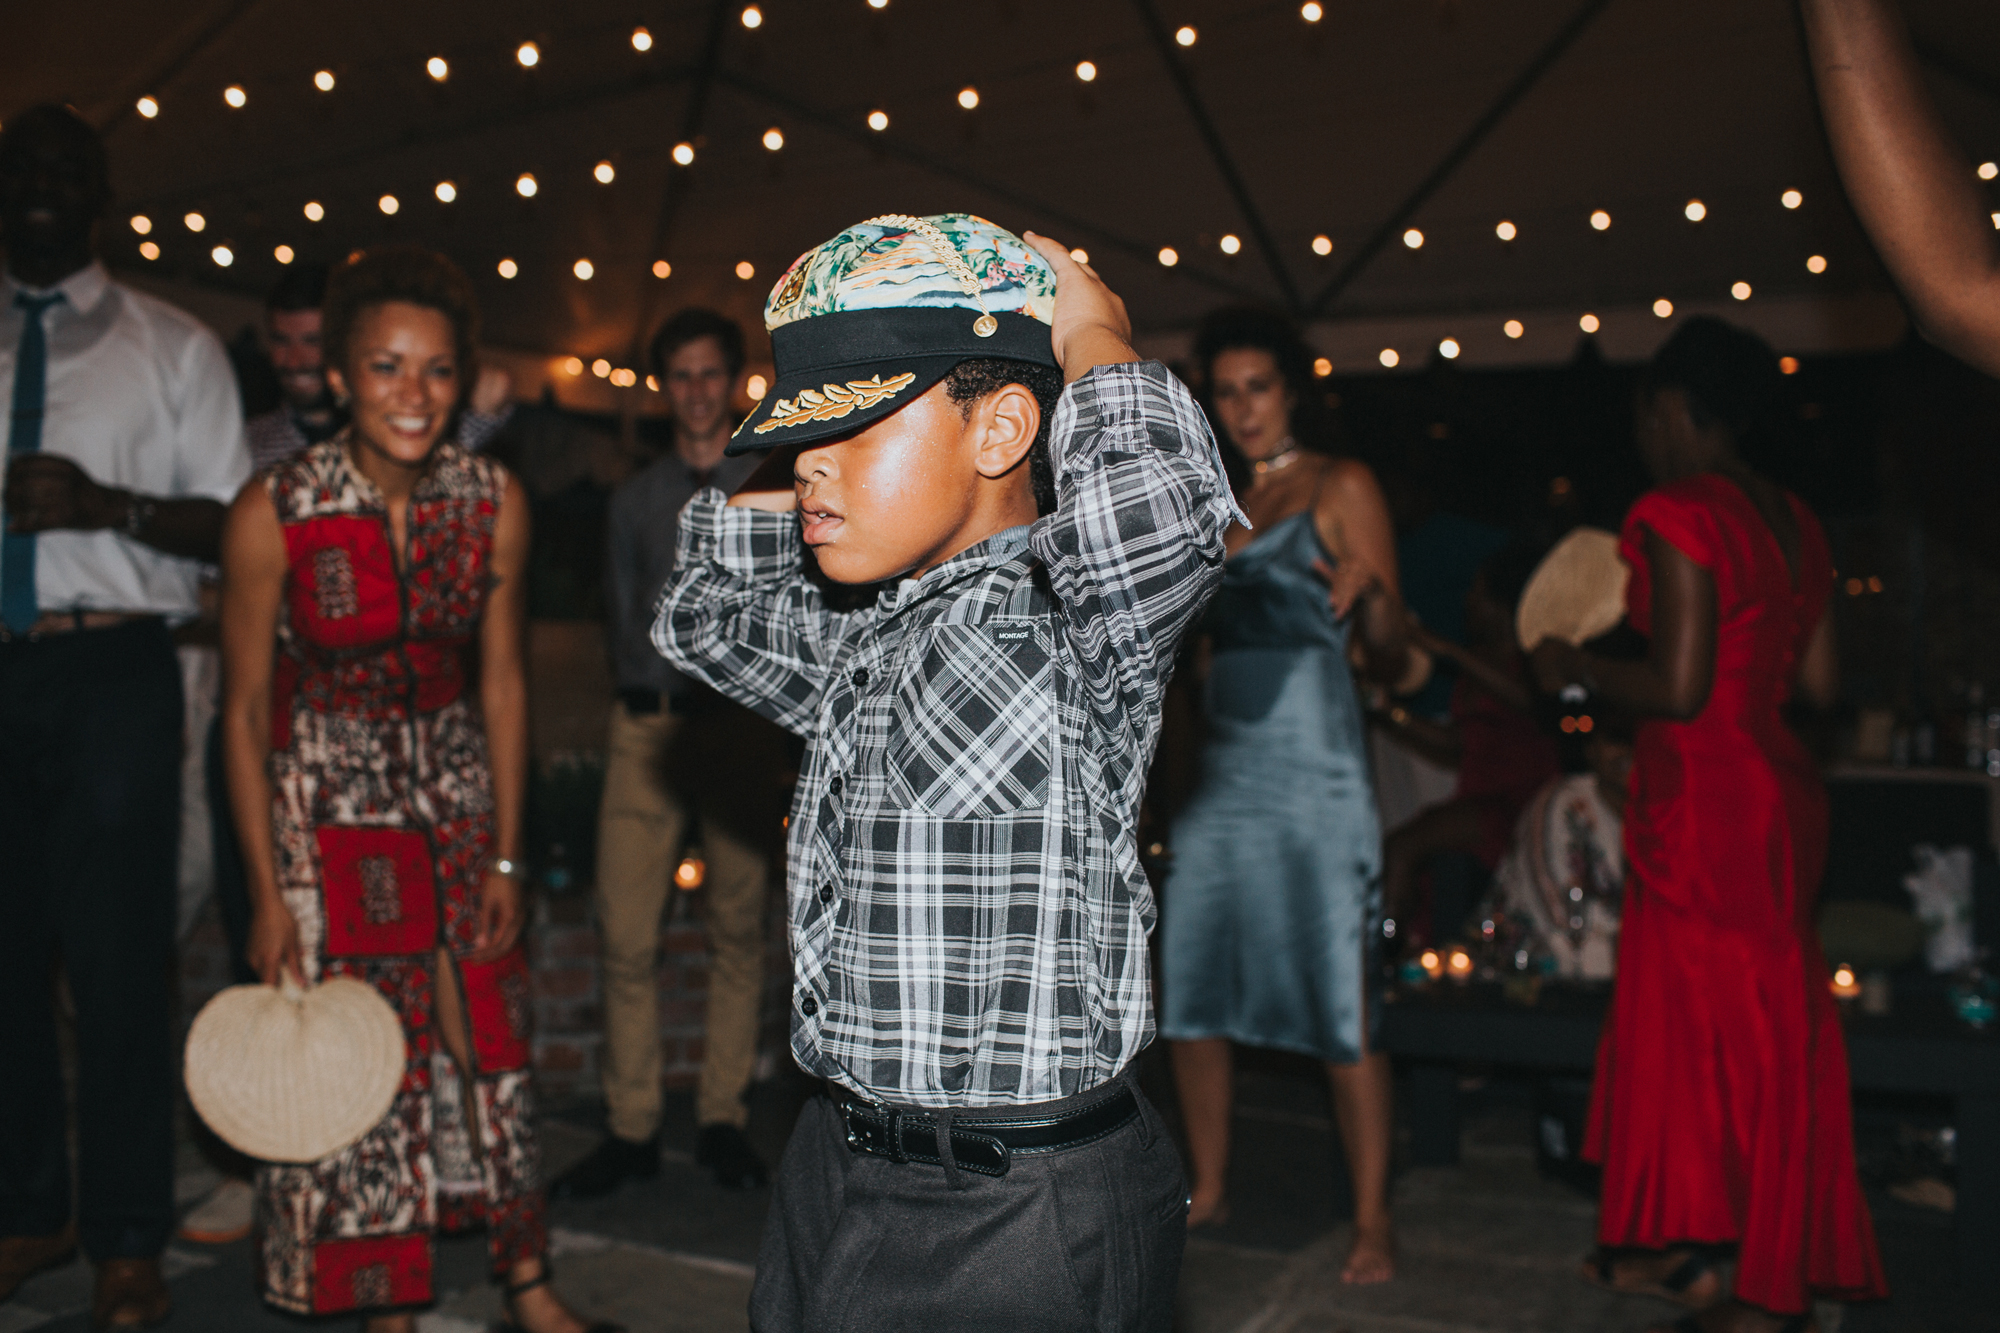 boy wearing boating hat dancing